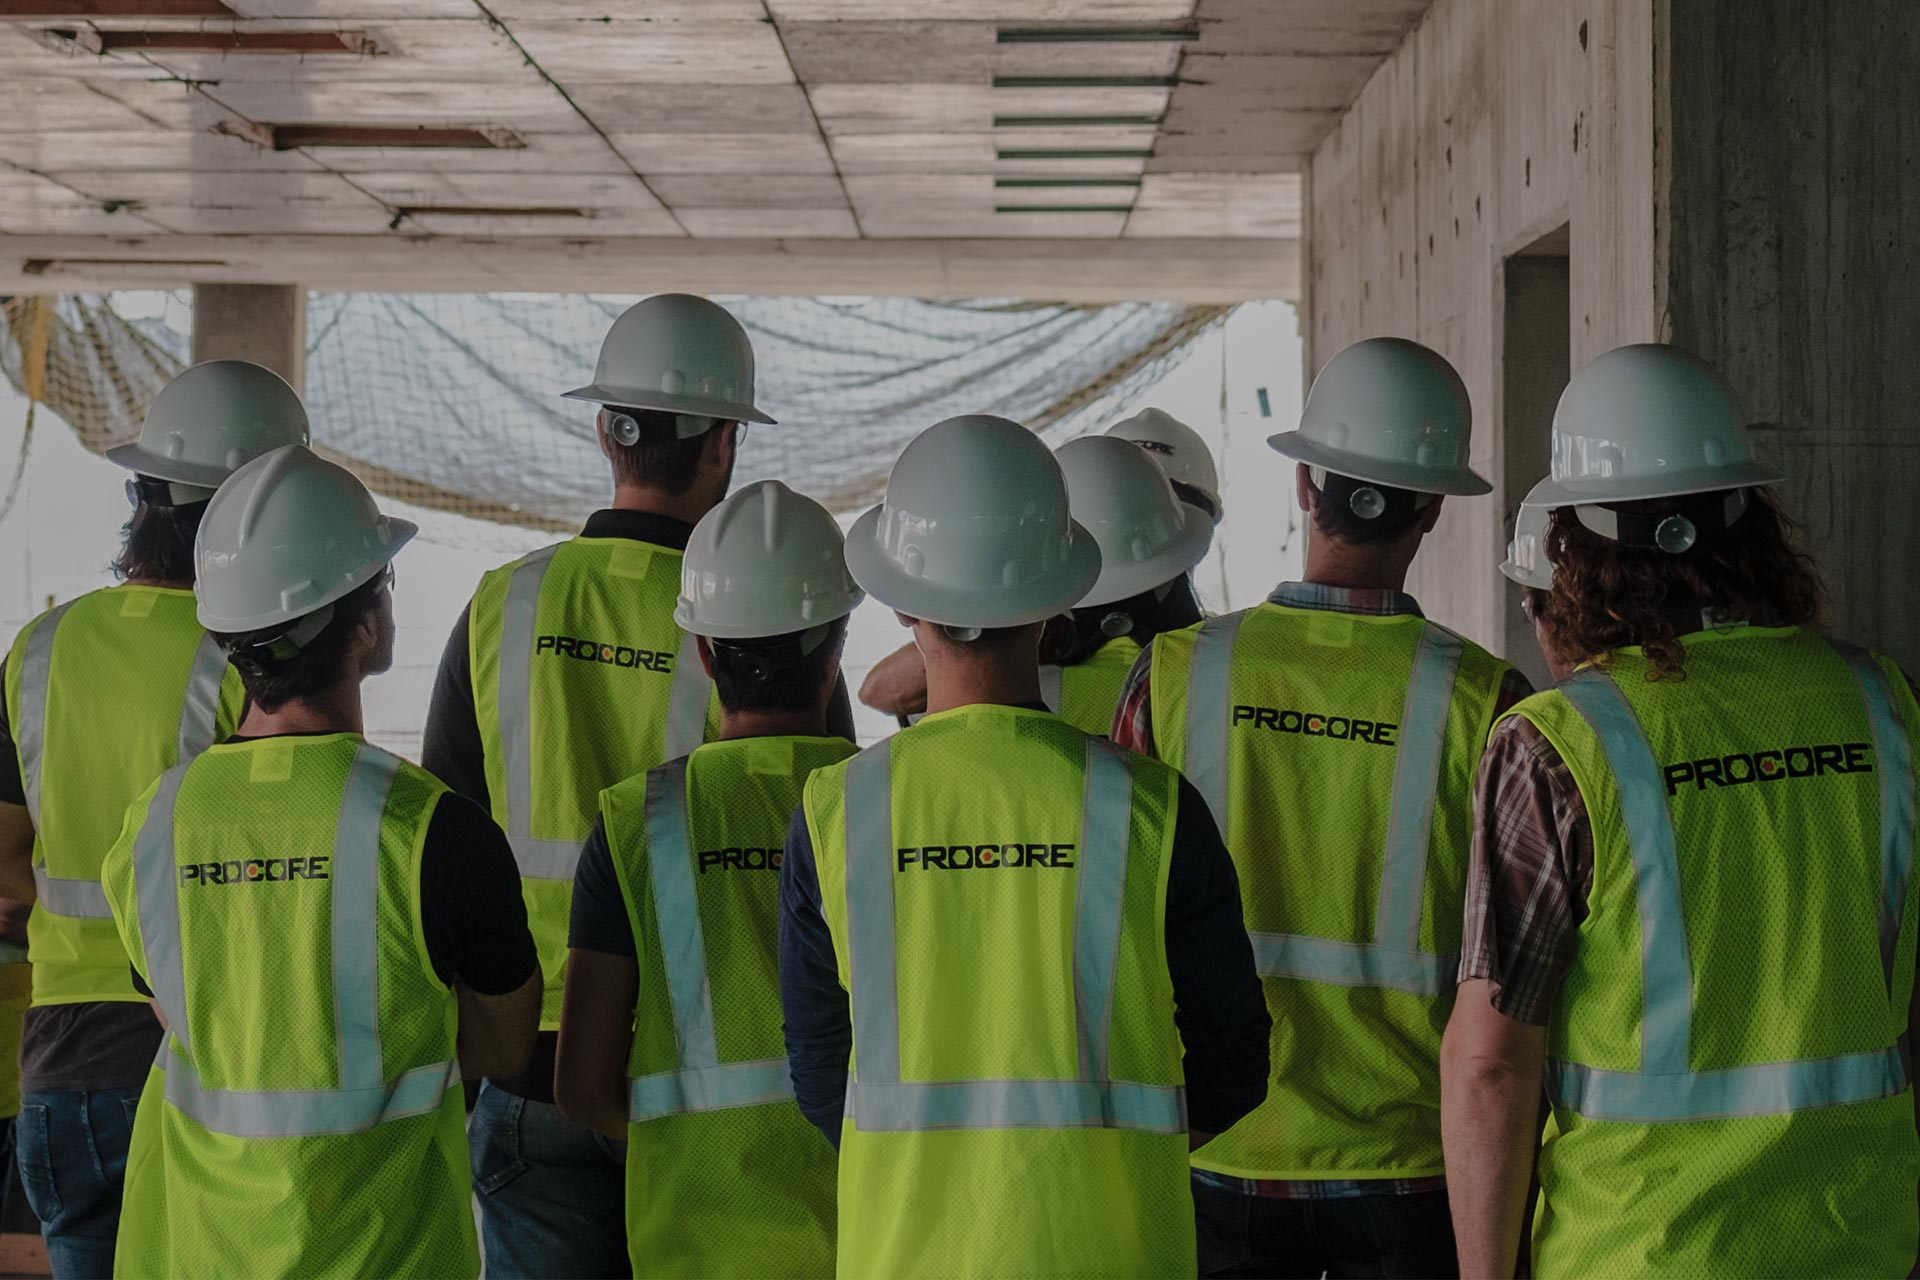 Construction workers with Procore safety vests